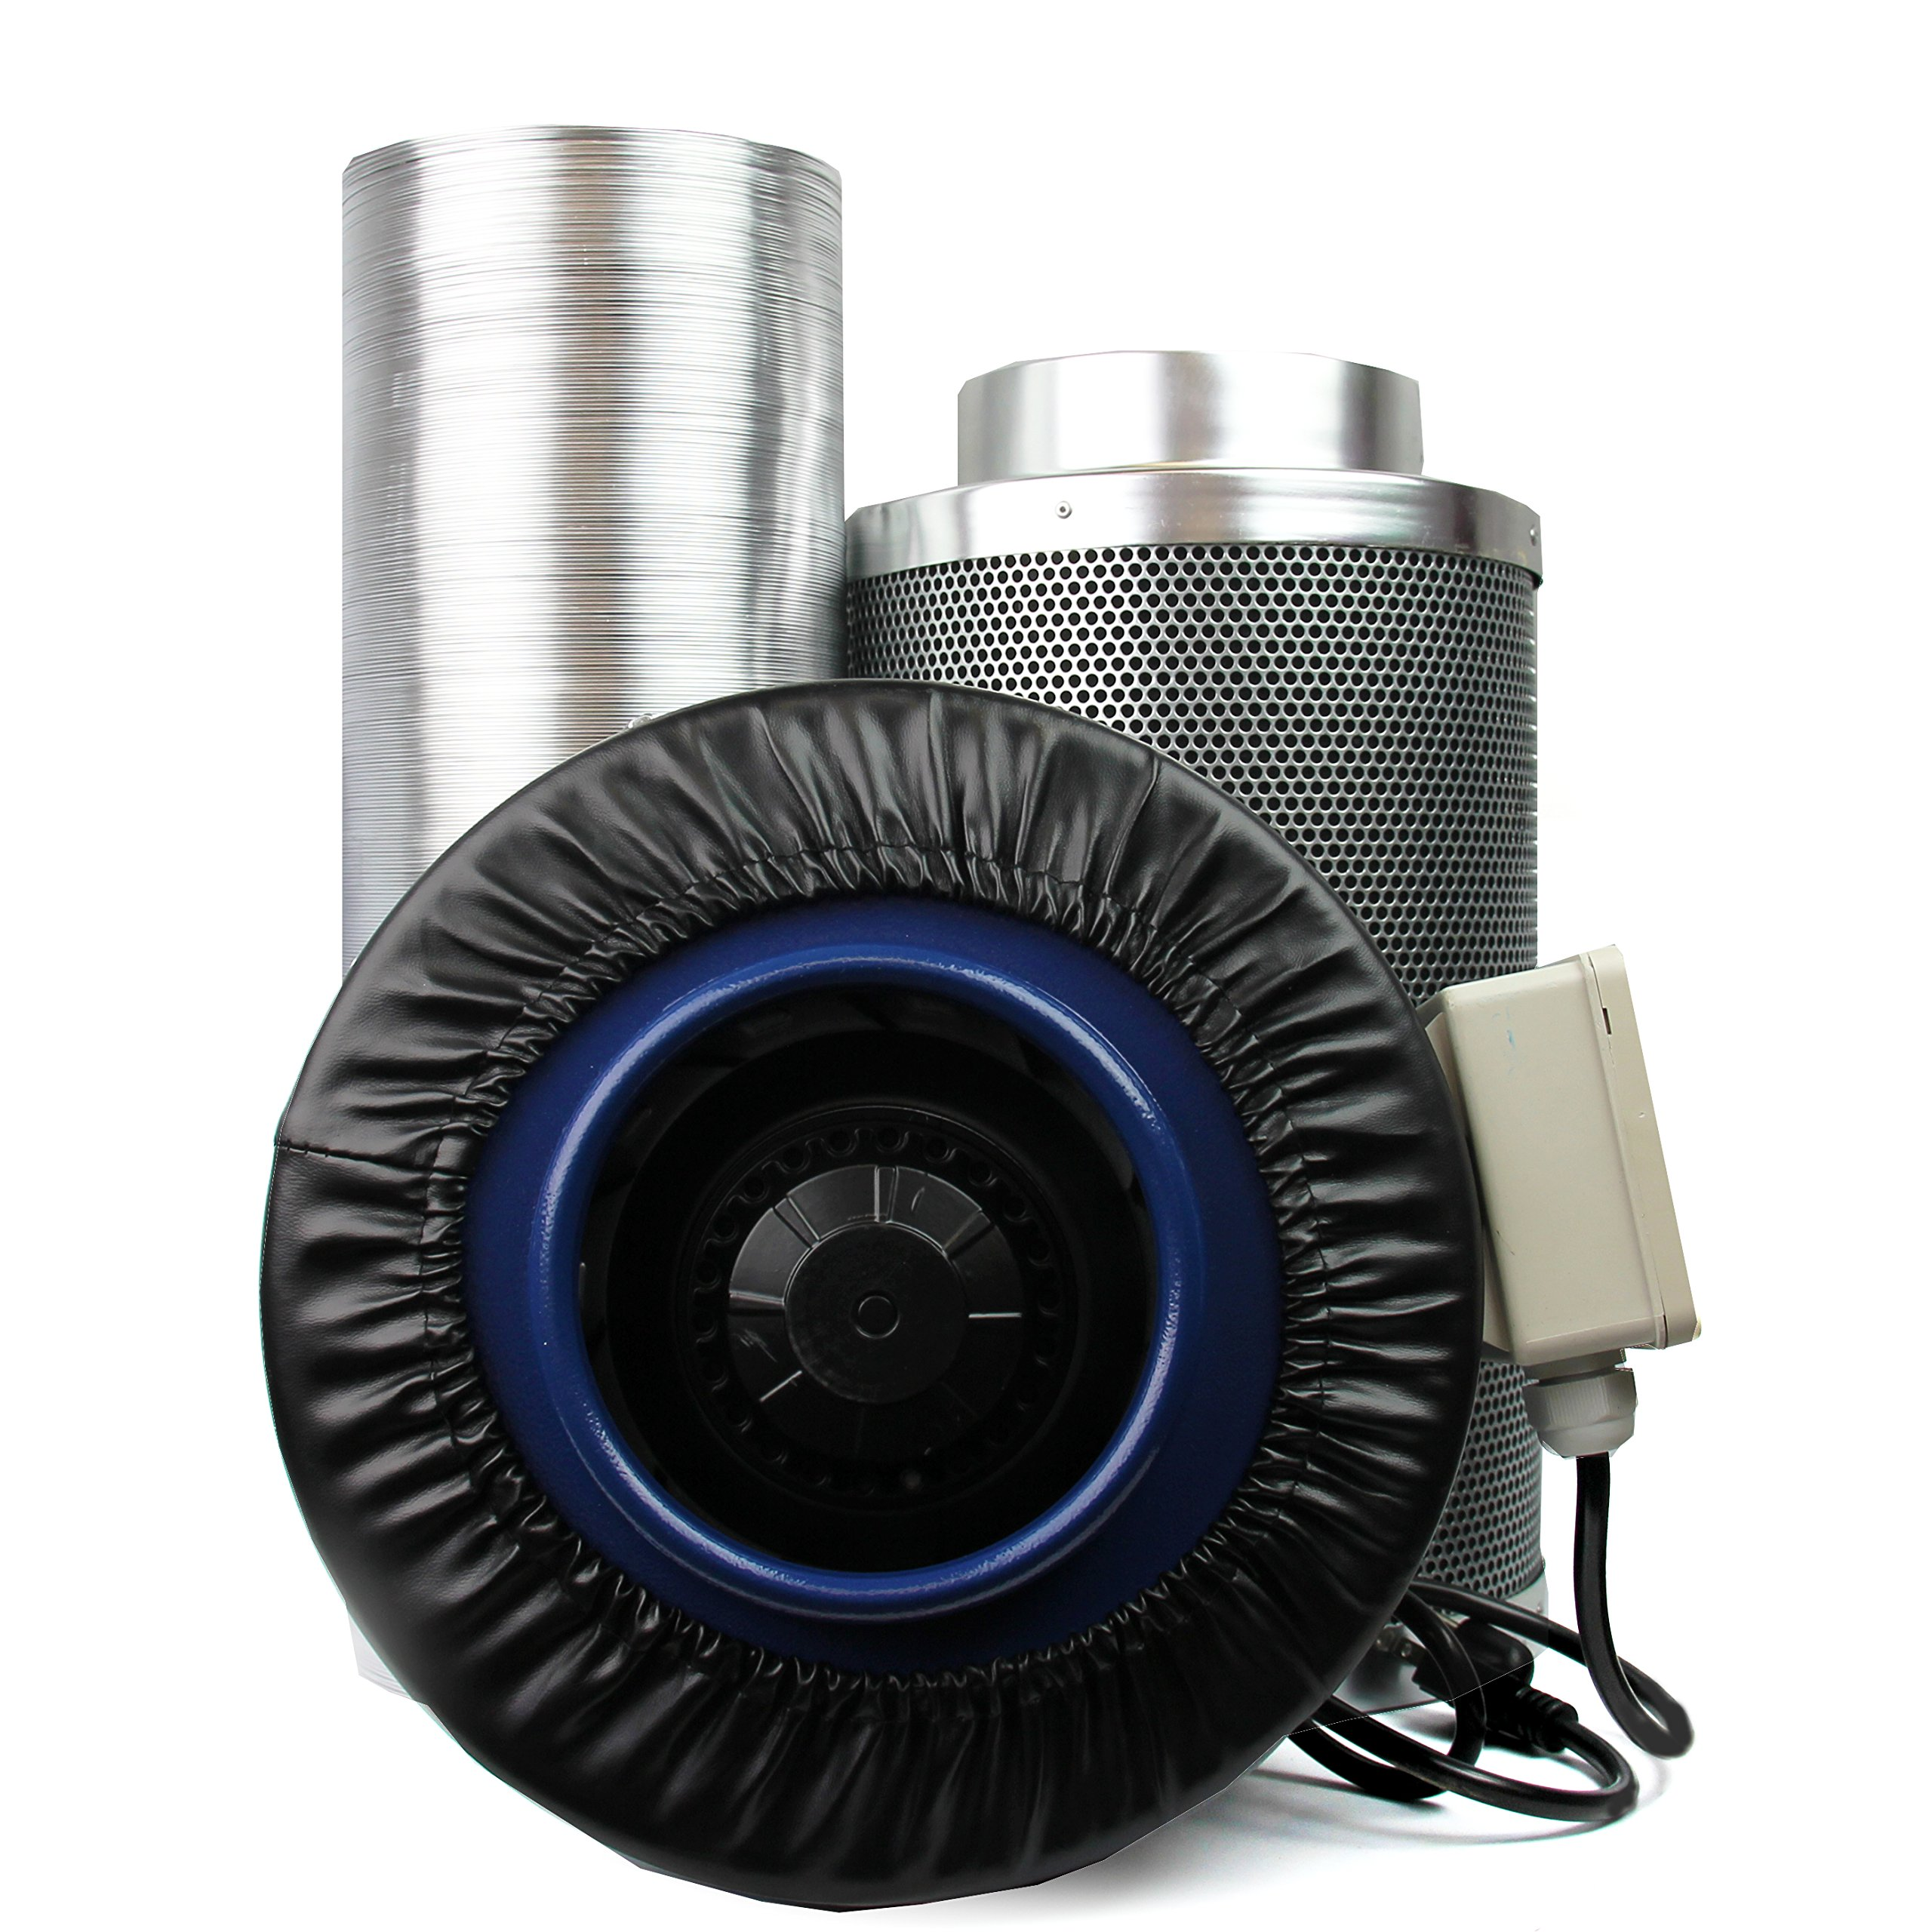 "Carbon Filter Fan- 6"" Carbon Fan Kit For Grow Tents And Indoor Gardens, Get Rid Of The Odor From Your Plants, a U.S. Solid Product"